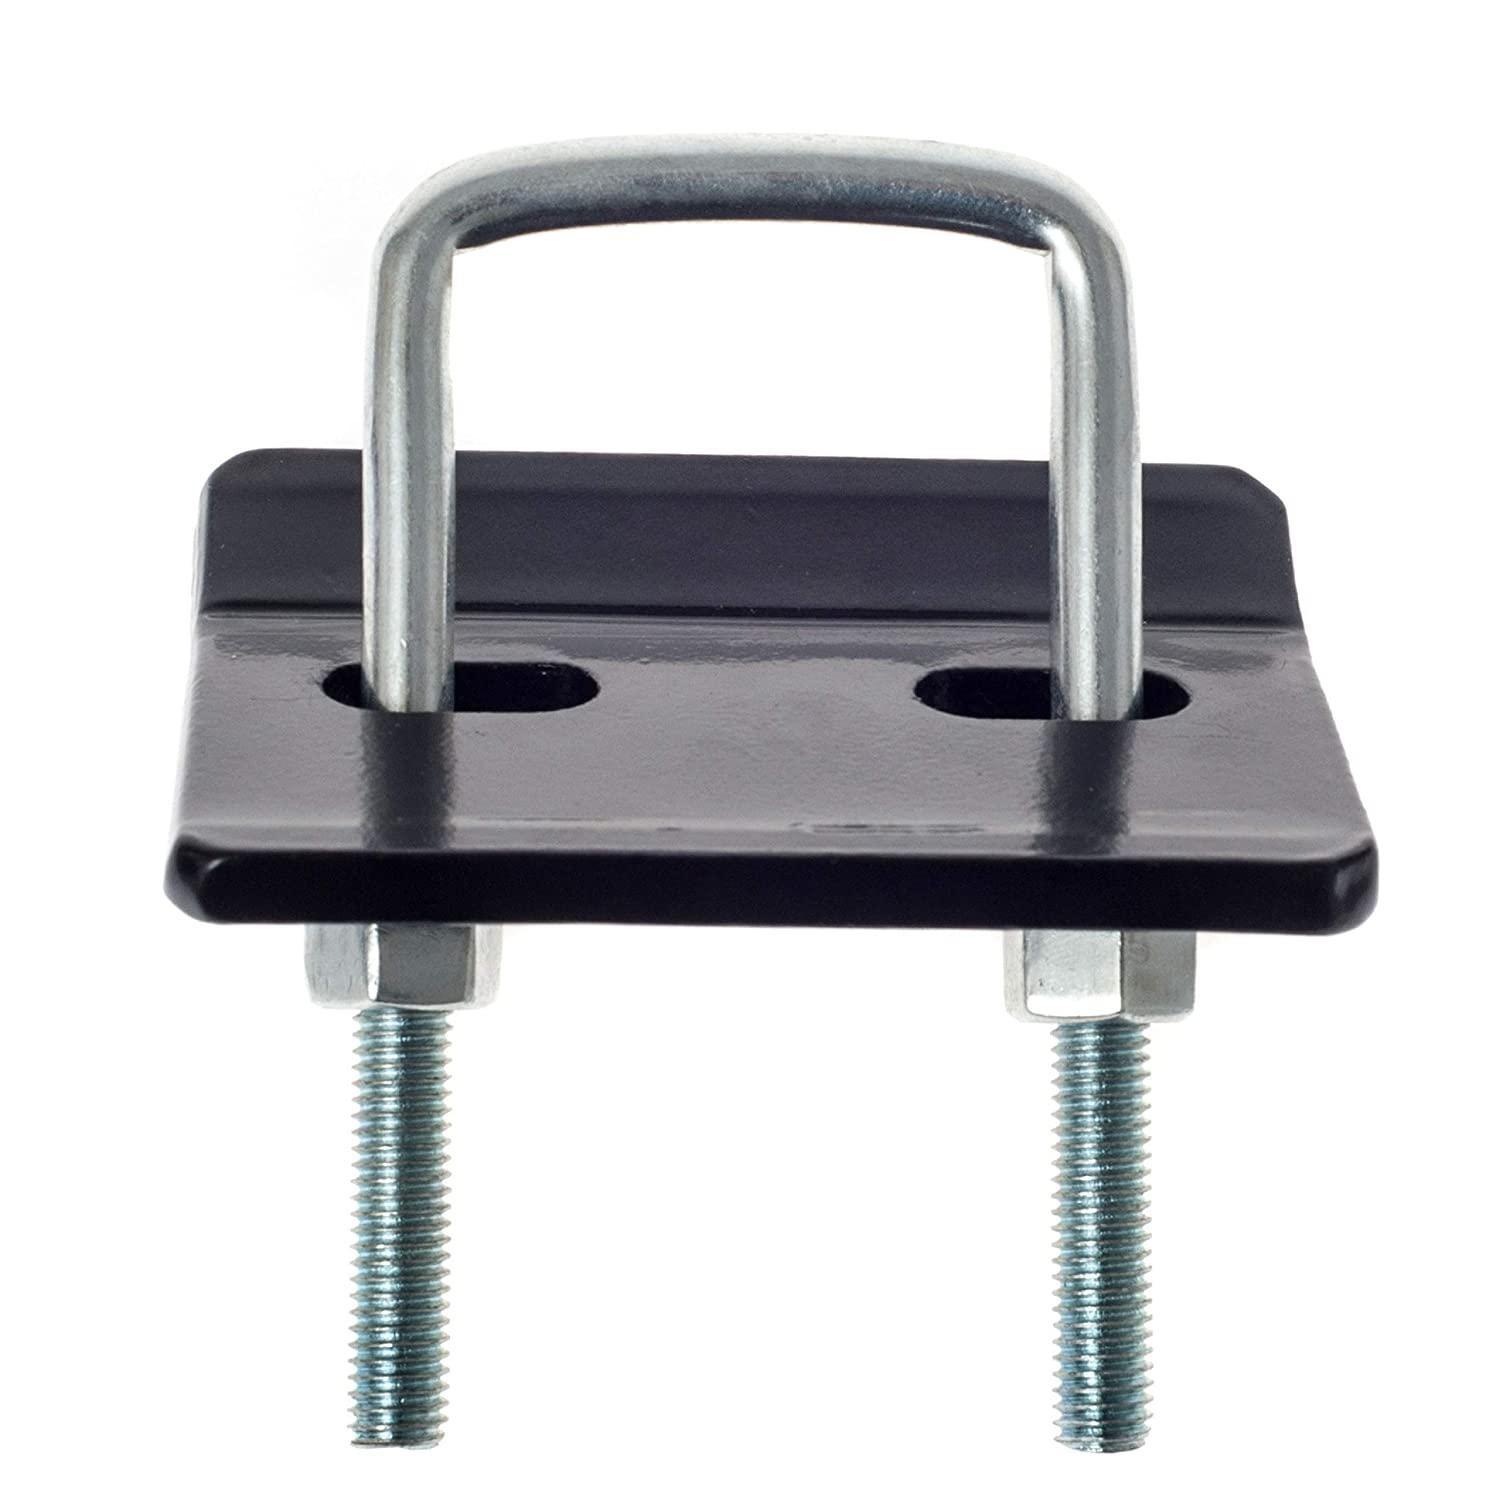 Zujara Hitch Tightener Anti Rattle Stabilizer for 1.25 and 2 inch Hitches Comes with Hitch Pin and Clip